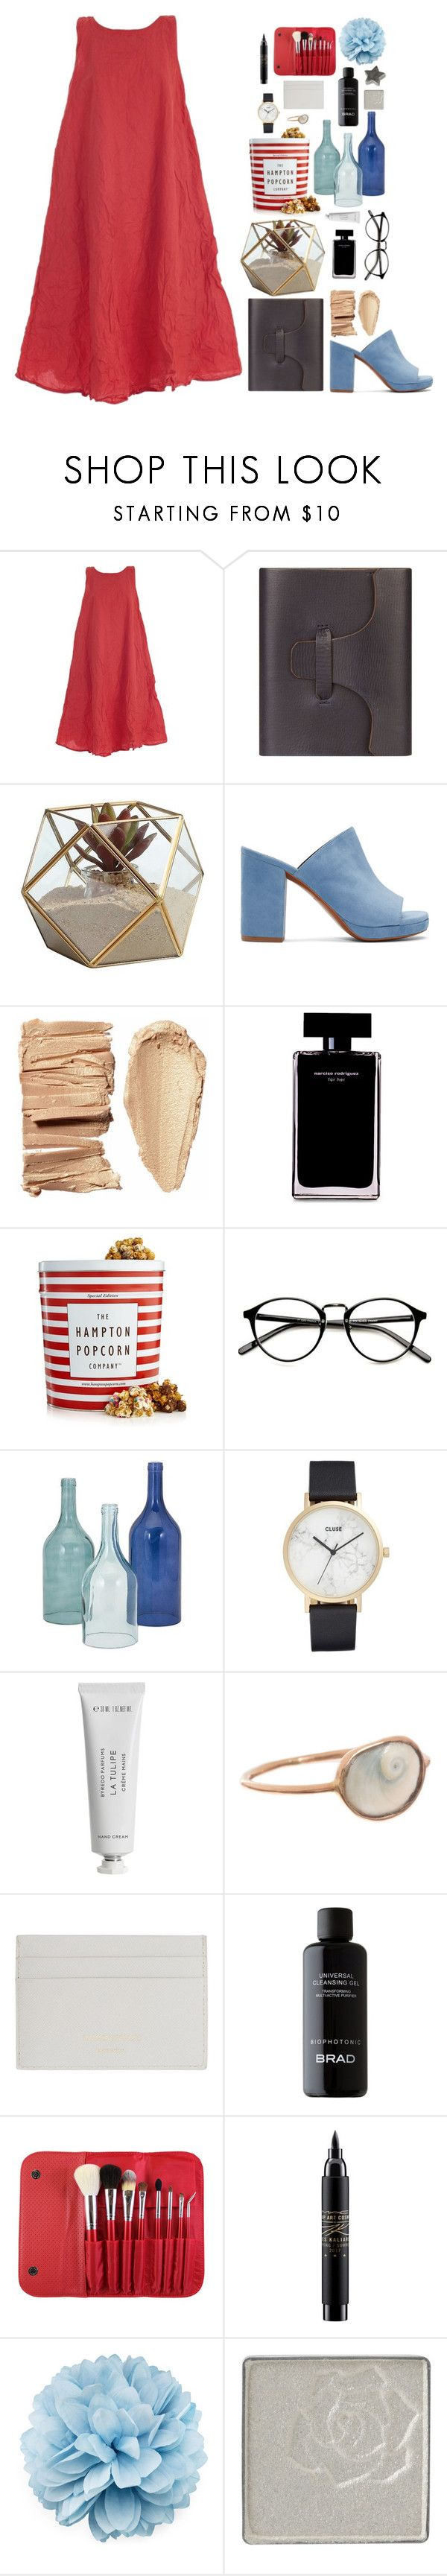 """""""like an american"""" by grandbudapest ❤ liked on Polyvore featuring DANIELA GREGIS, Hayden, Danya B, Robert Clergerie, Narciso Rodriguez, The Hampton Popcorn Company, Home Decorators Collection, CLUSE, Byredo and Dezso by Sara Beltrán"""